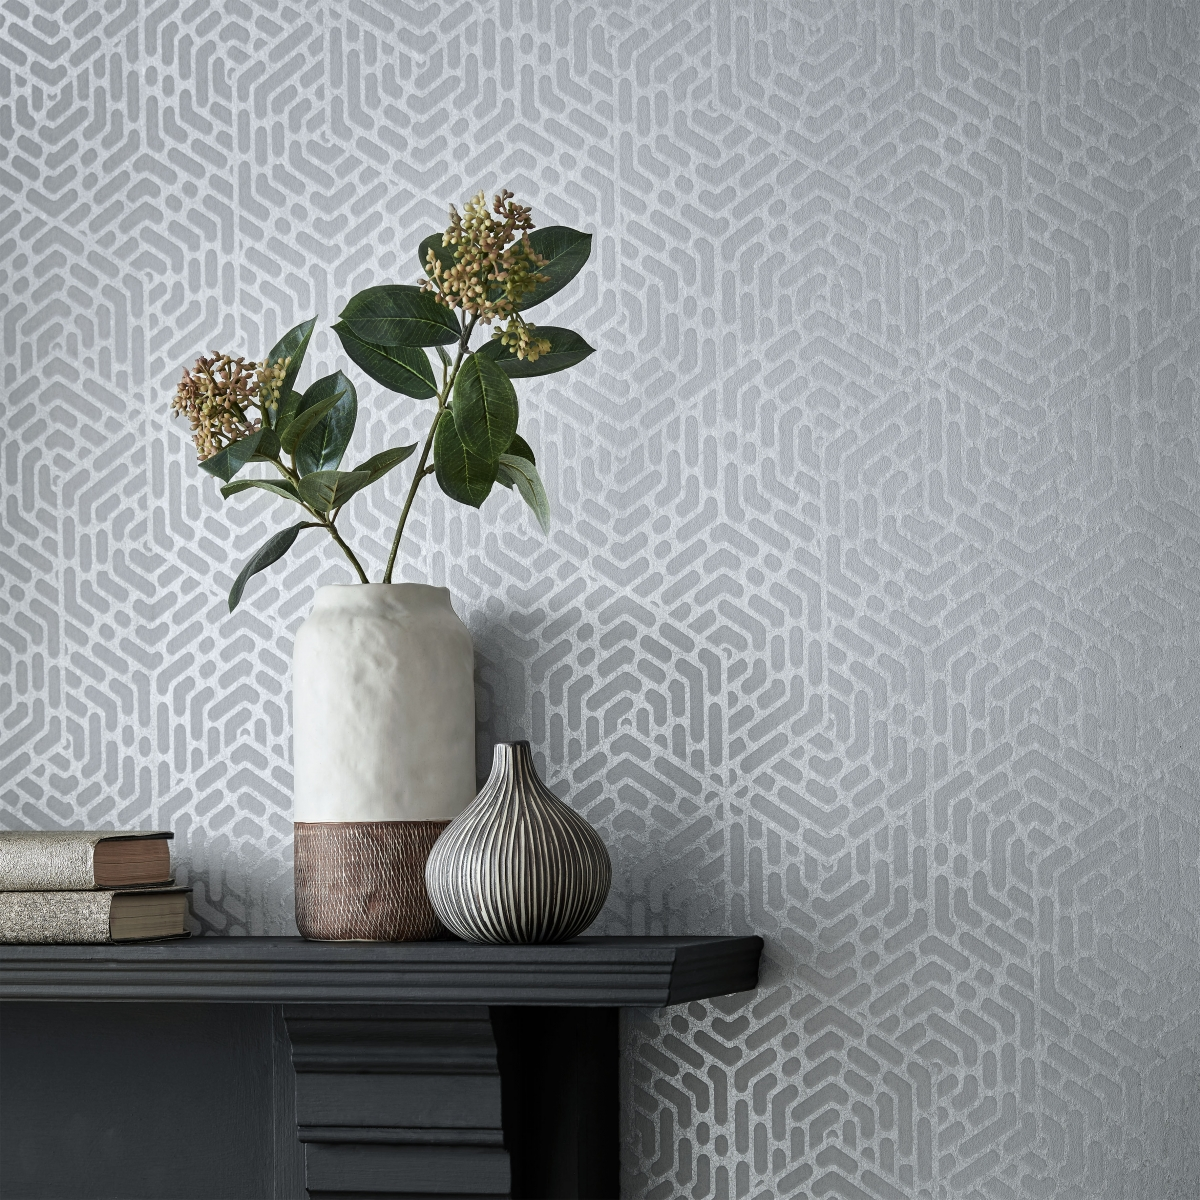 Tapet Willow, 1838 Wallcoverings, 5.3mp / rola